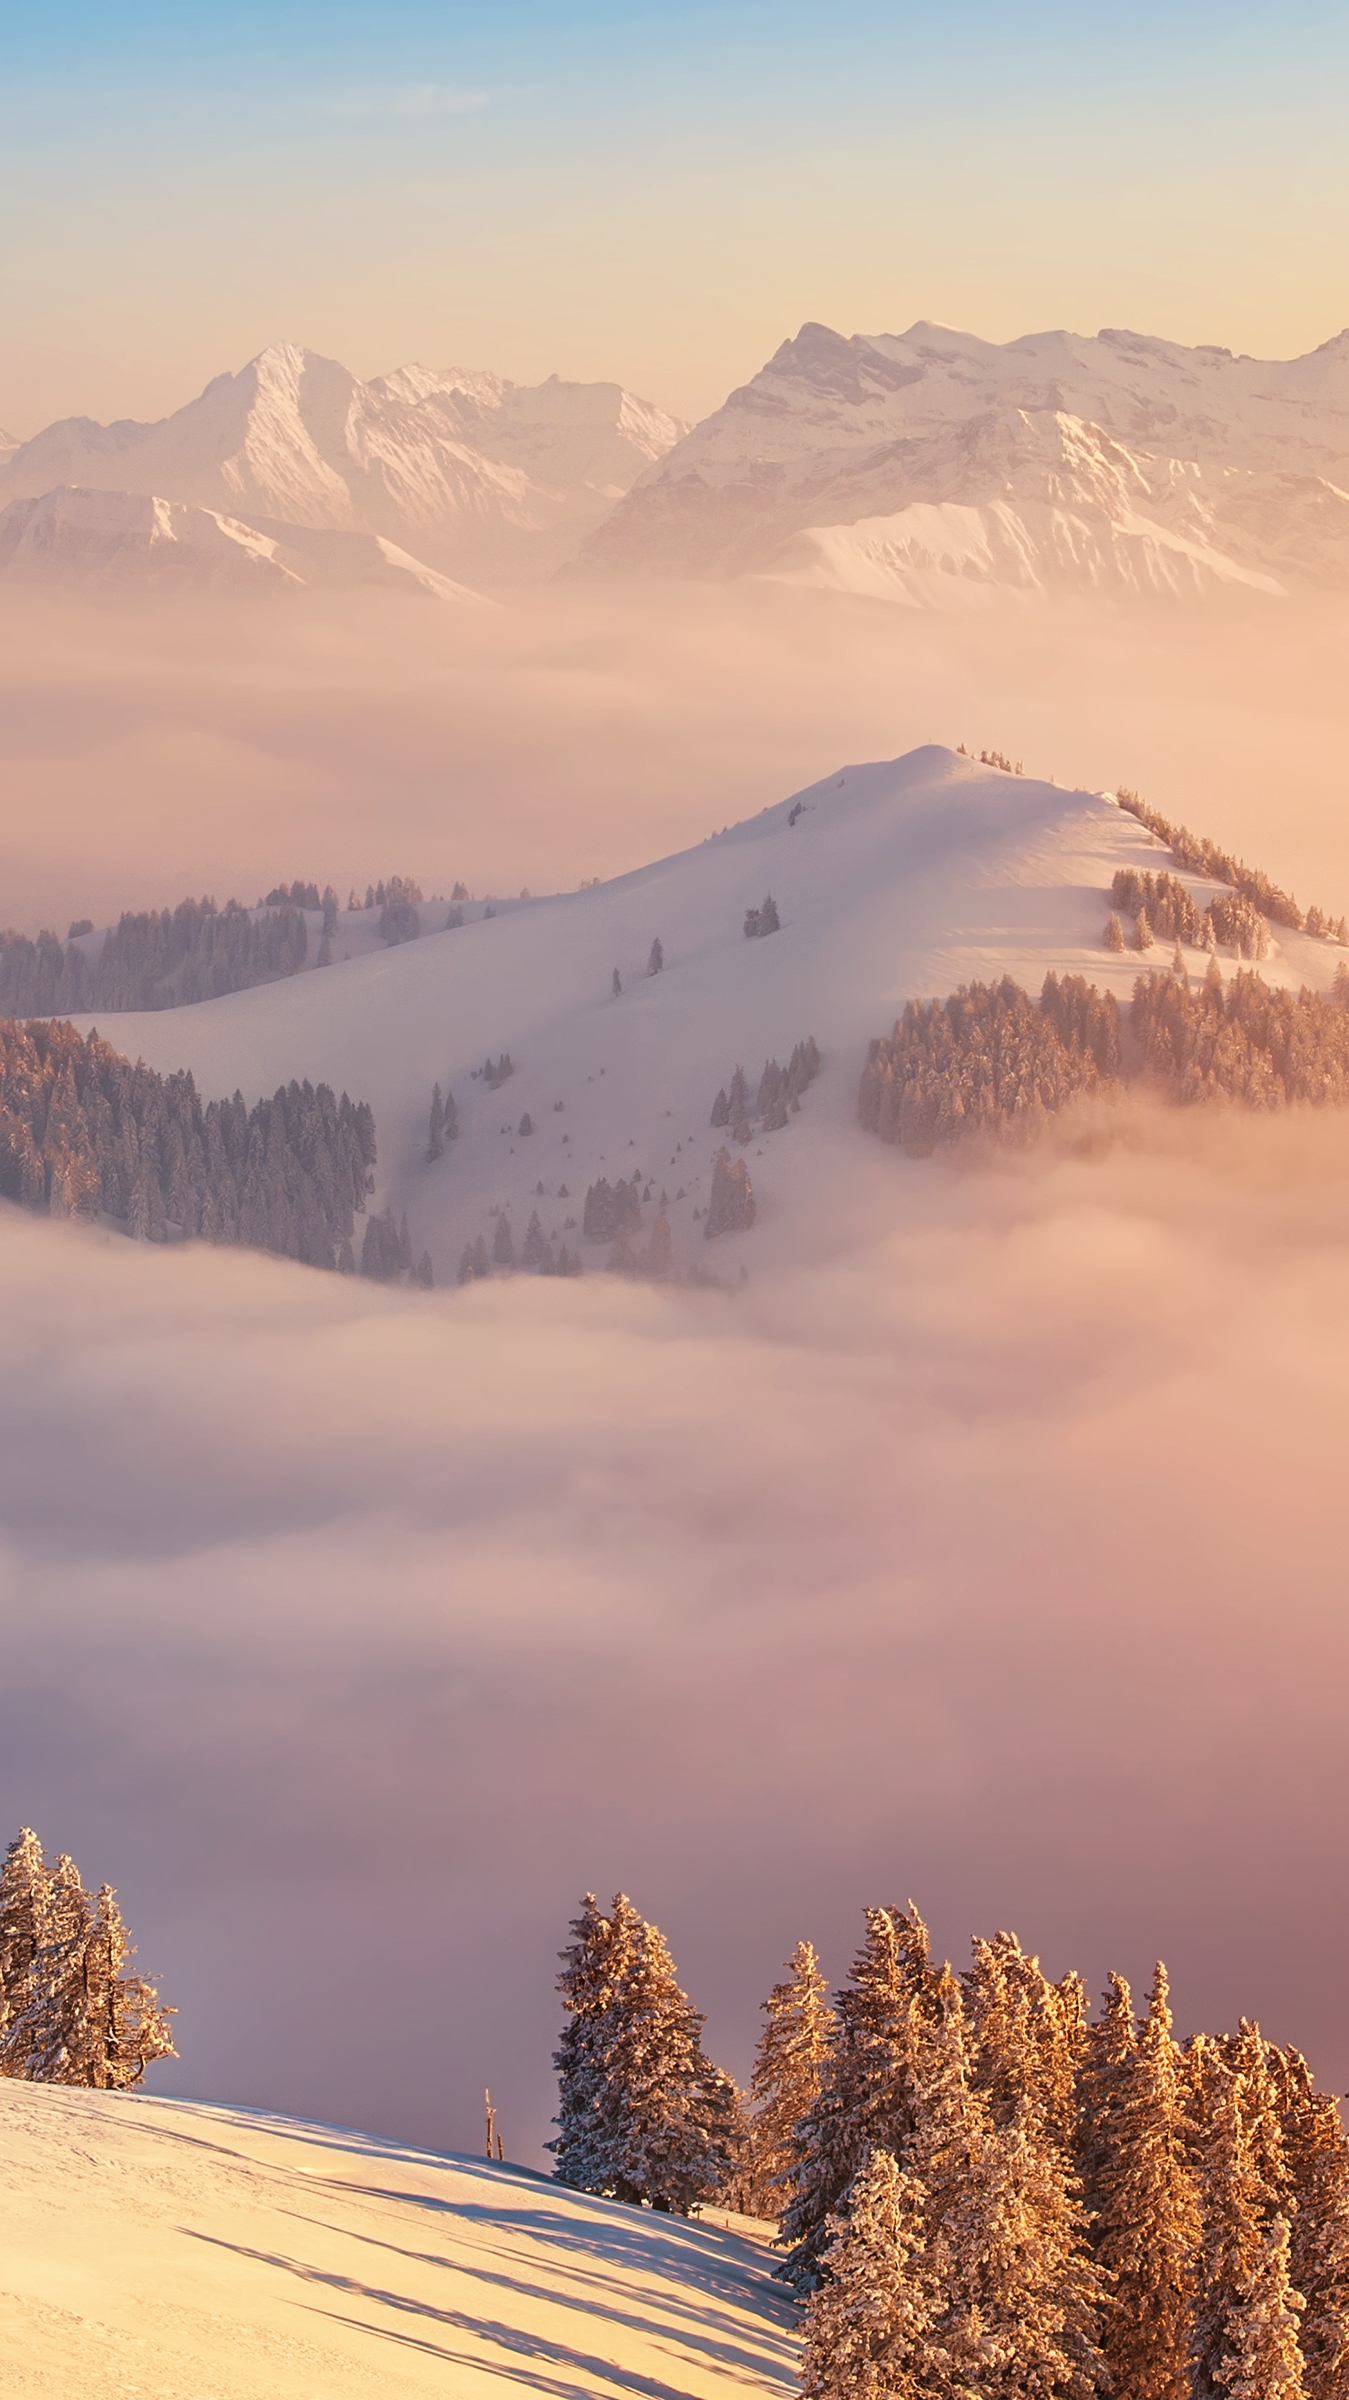 Animal Desktop Wallpaper Switzerland Mount Rigi Alps Clouds Iphone Wallpaper